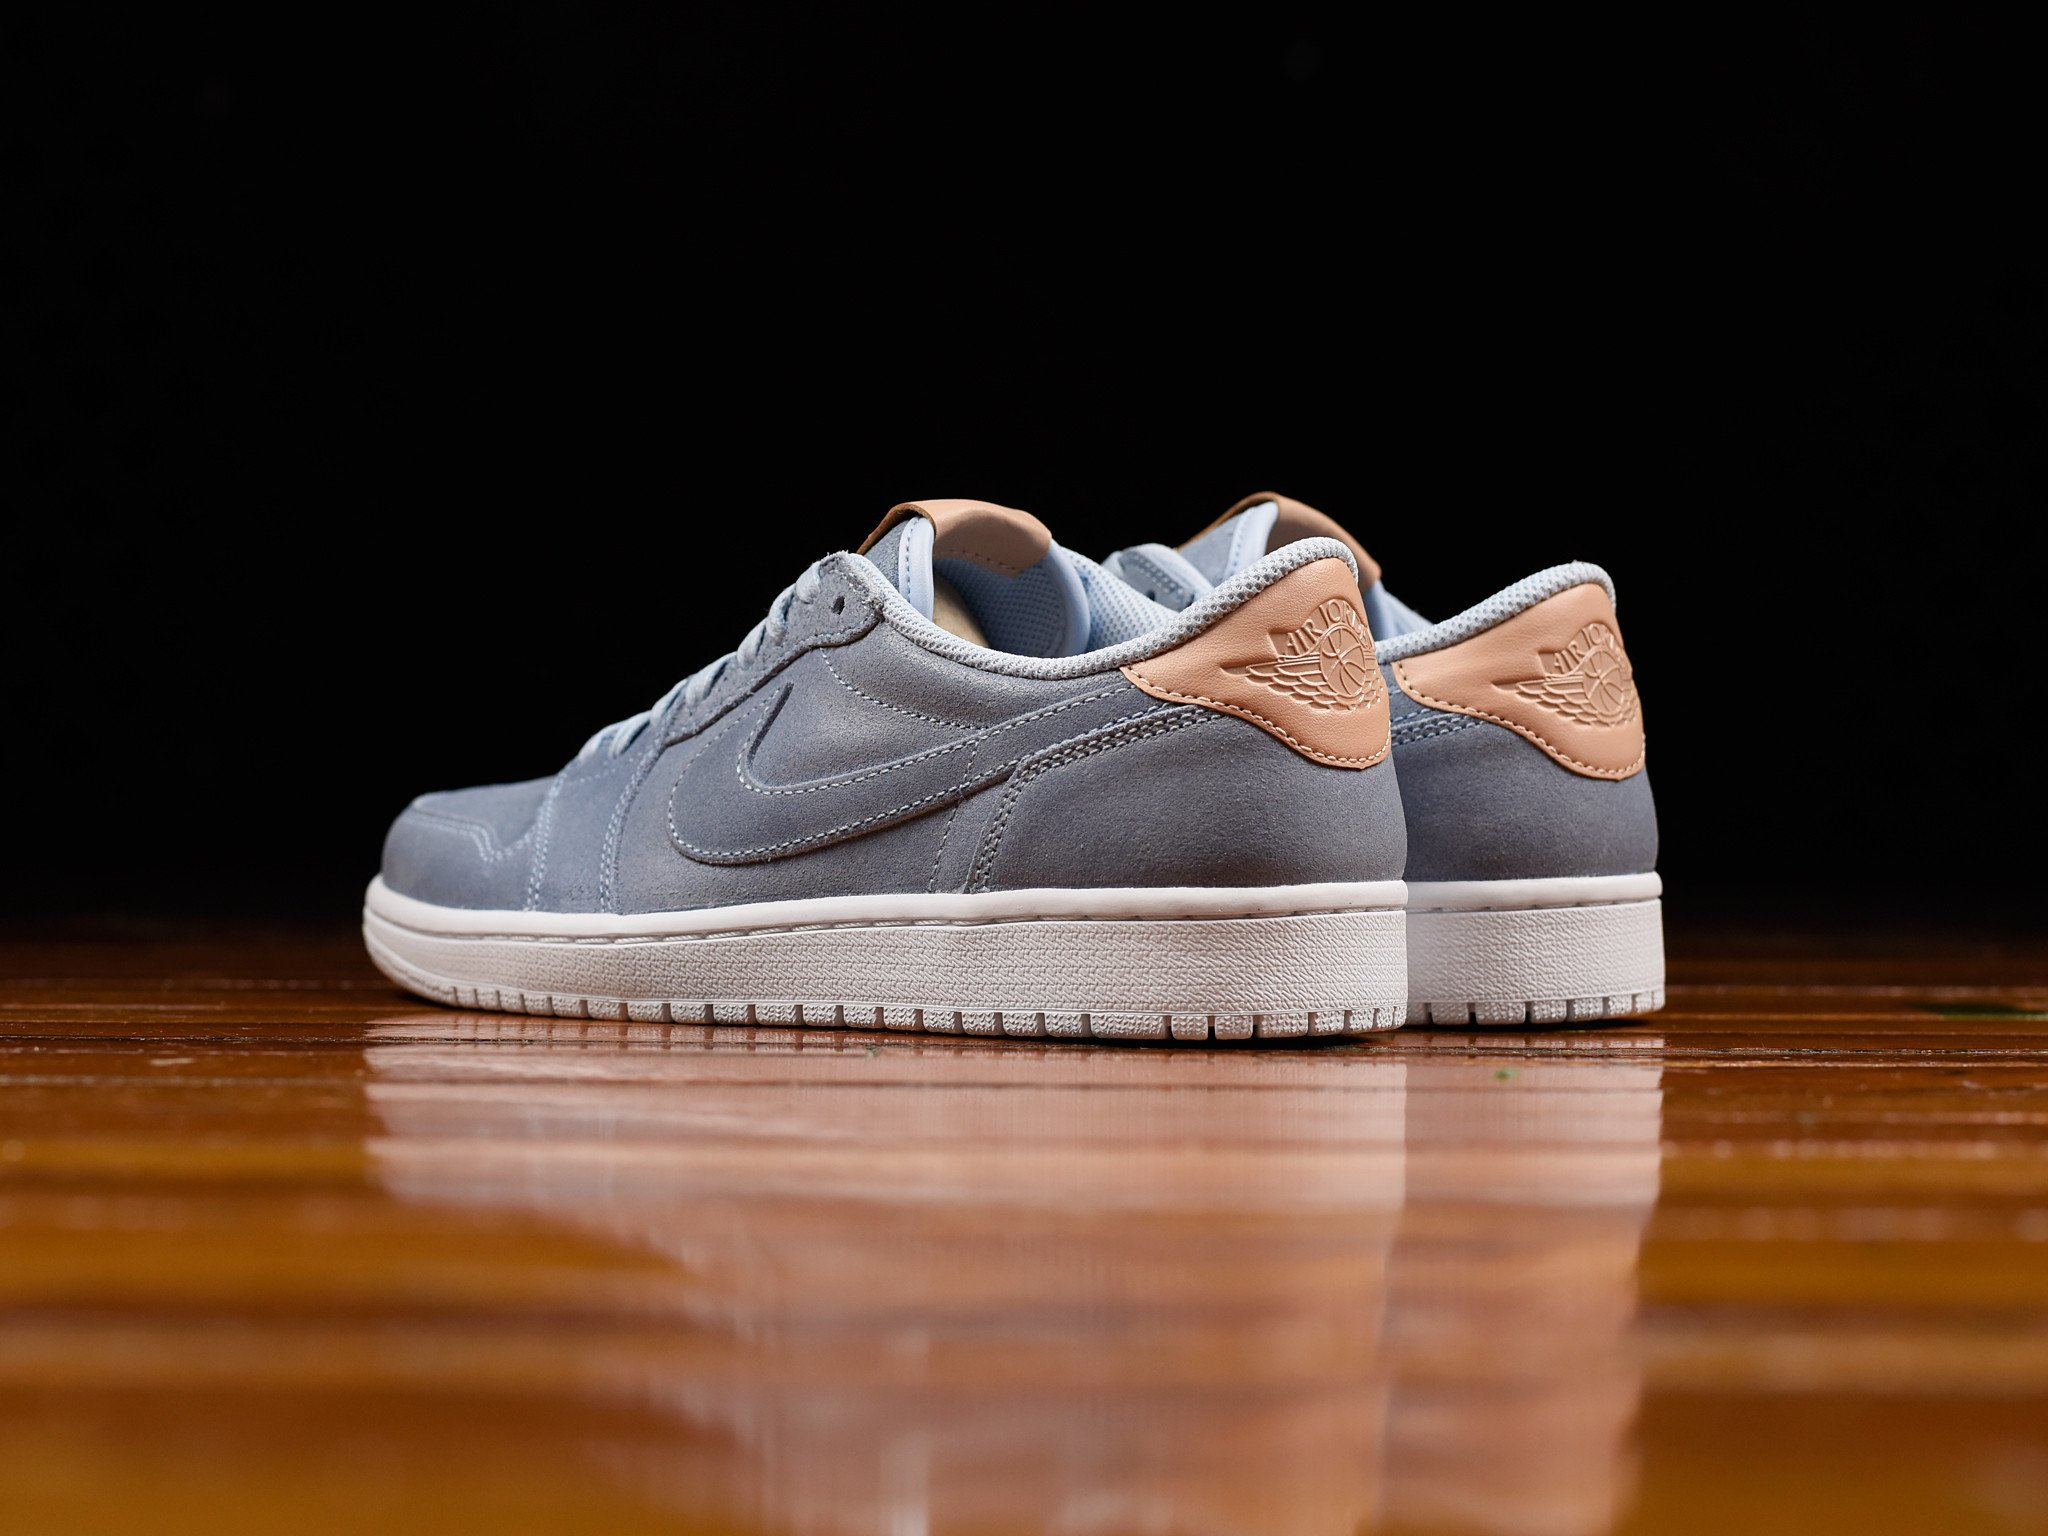 Air Jordan 1 Retro low Grey Suede Side